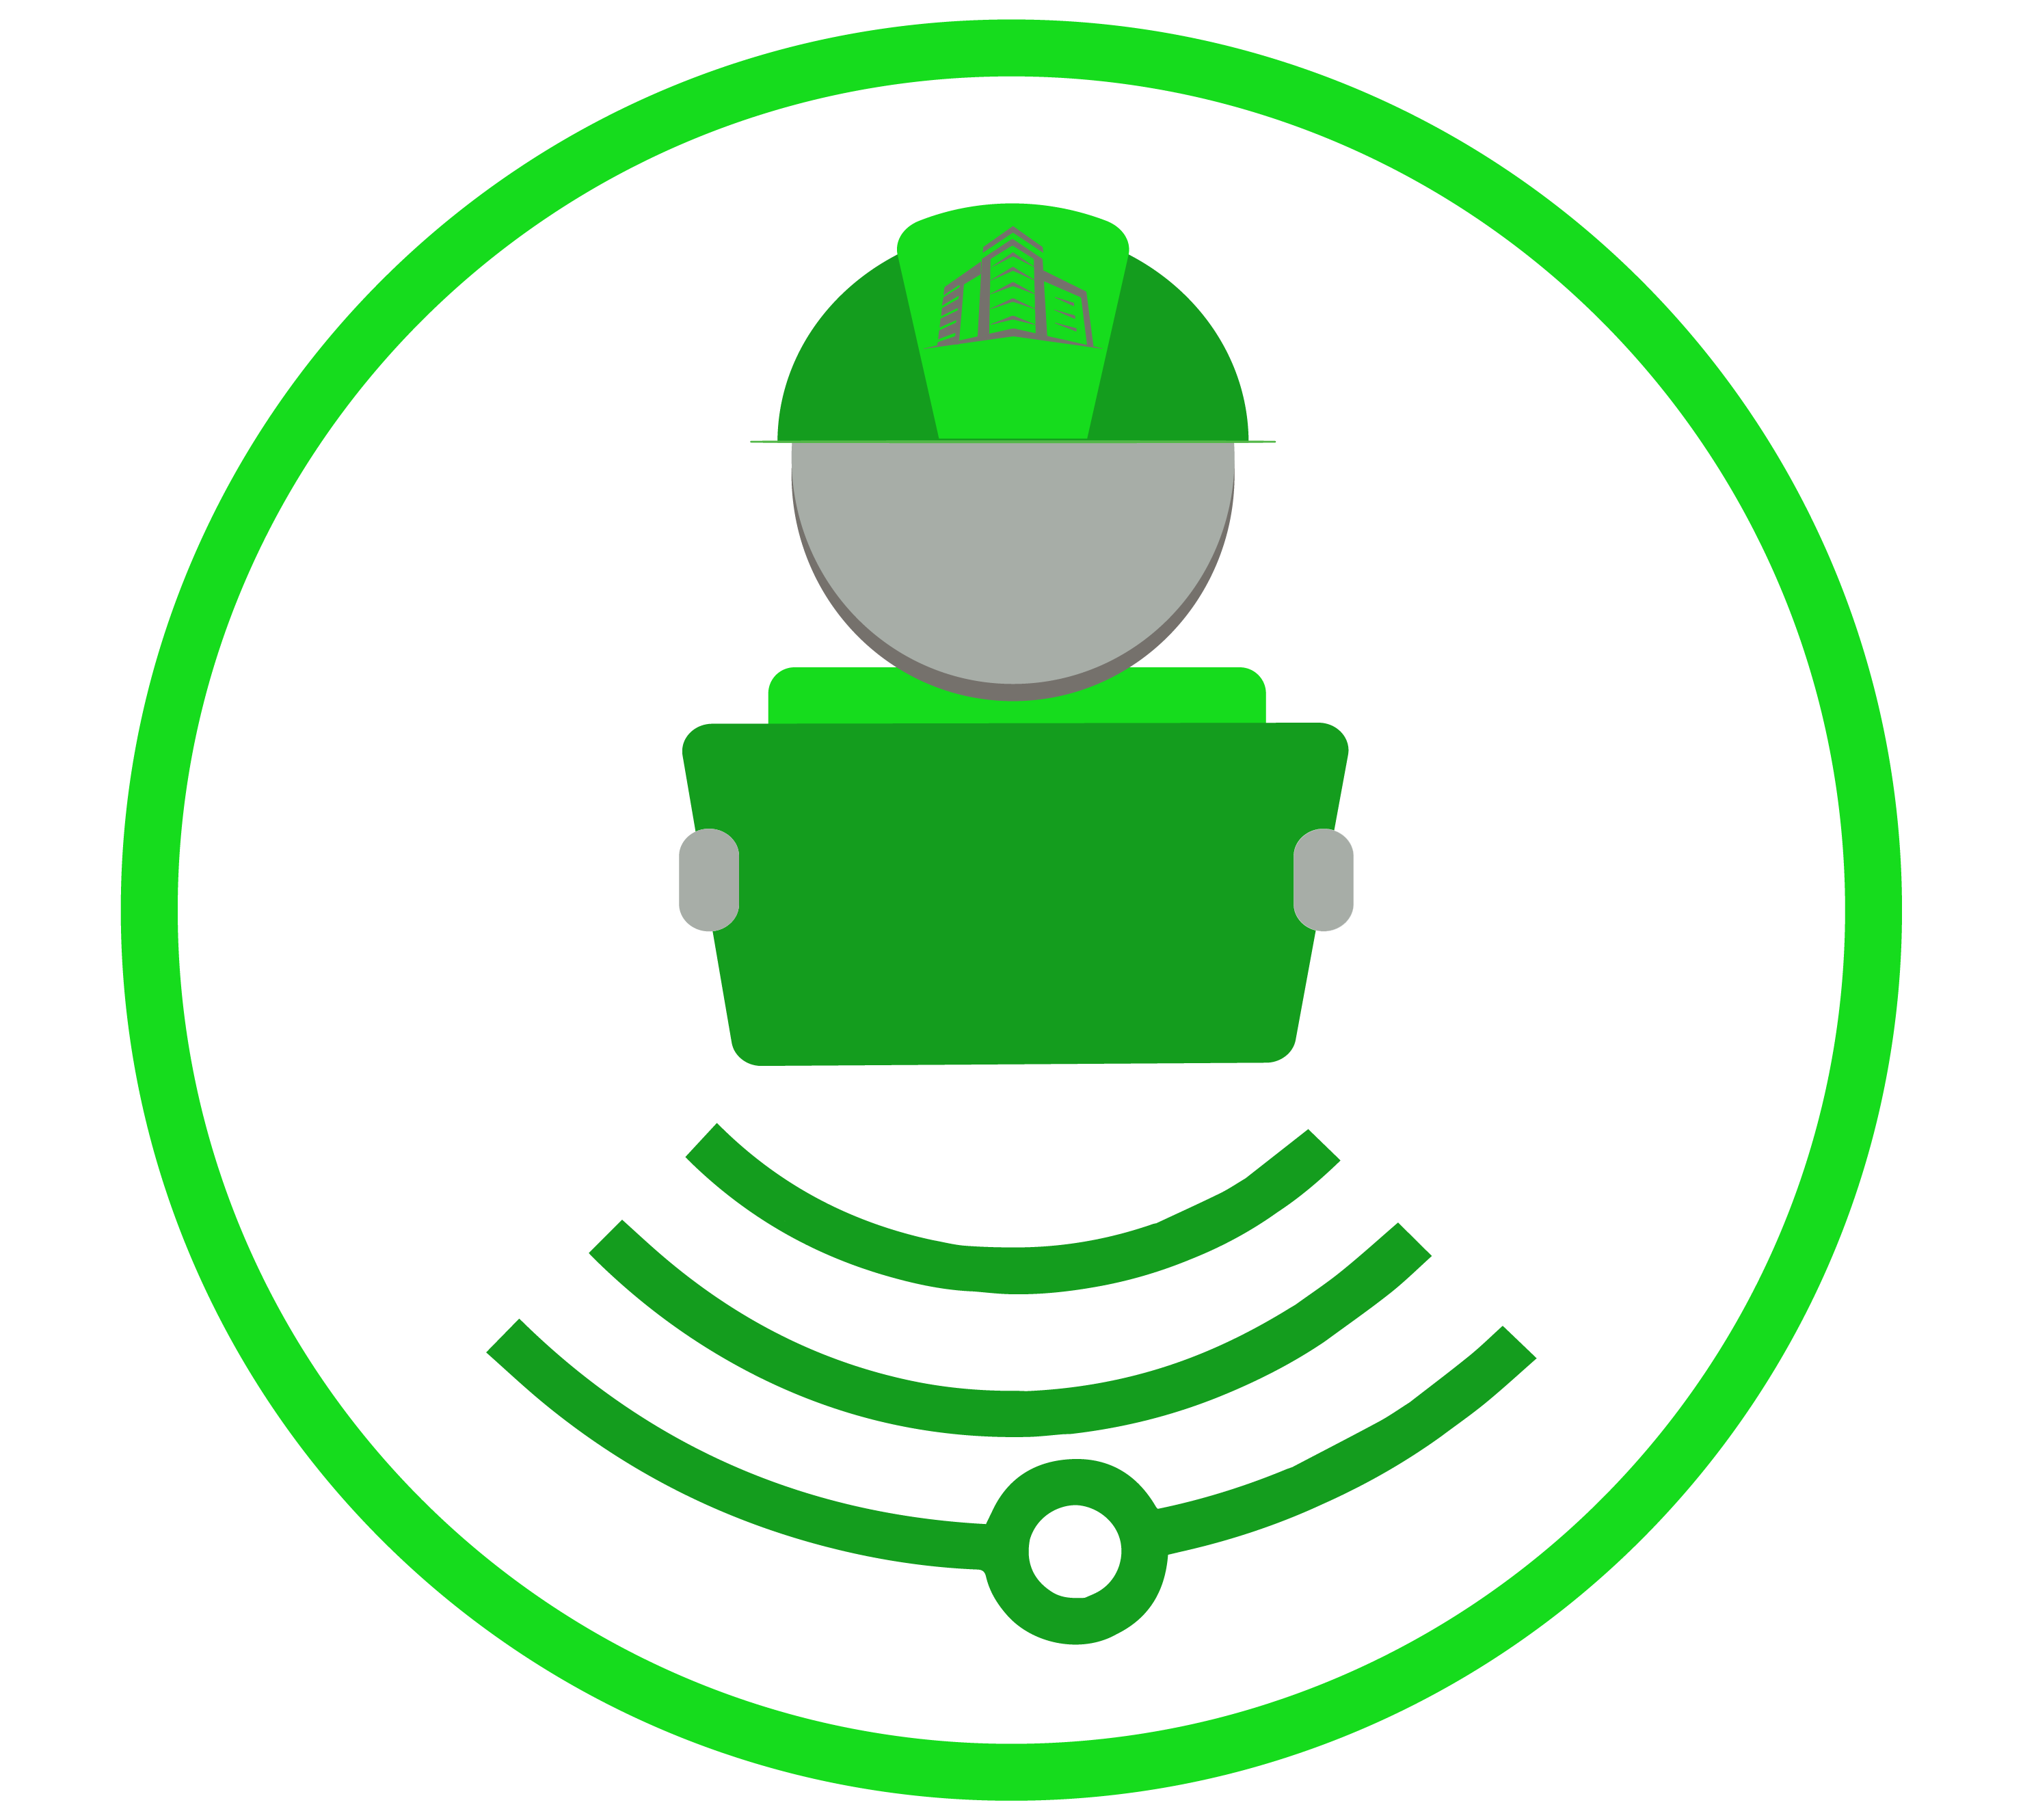 subsurface utility engineering or SUE service icon